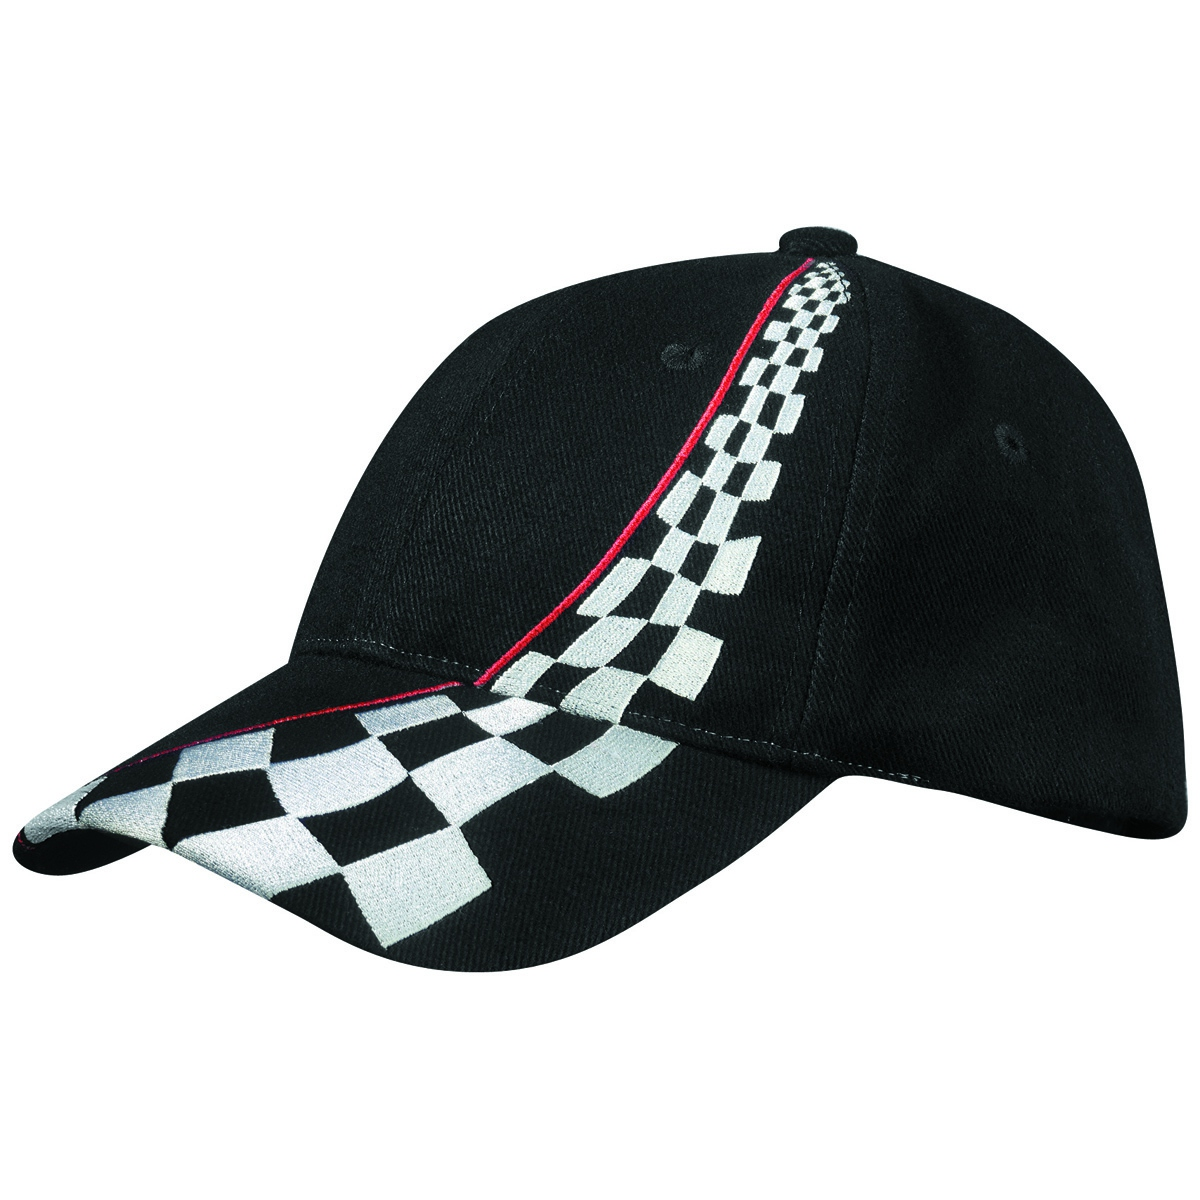 casquette style f1 rallye drapeau damier formule 1 course automobile. Black Bedroom Furniture Sets. Home Design Ideas